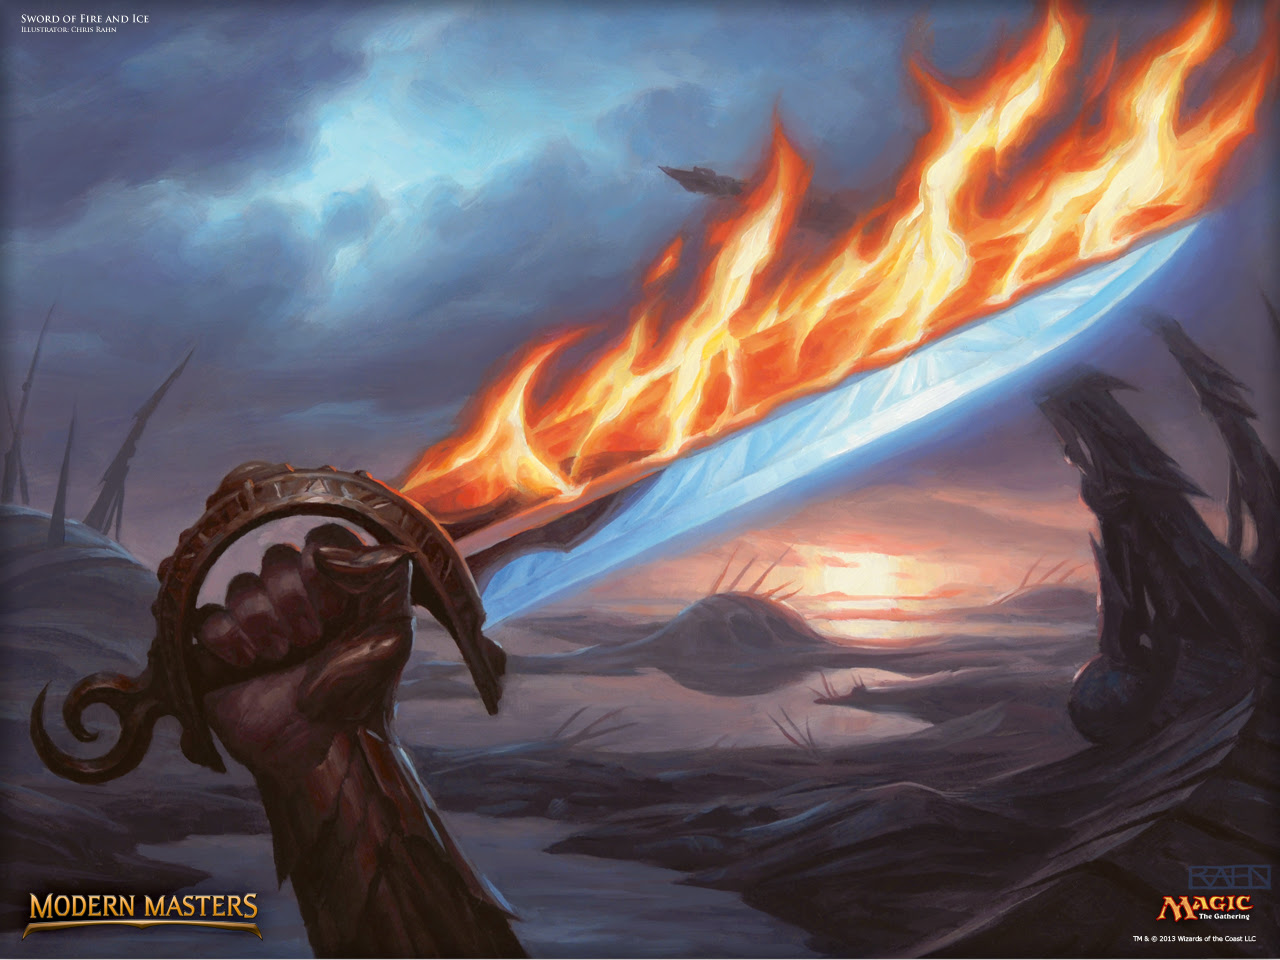 Wallpaper Of The Week Sword Of Fire And Ice Magic The Gathering